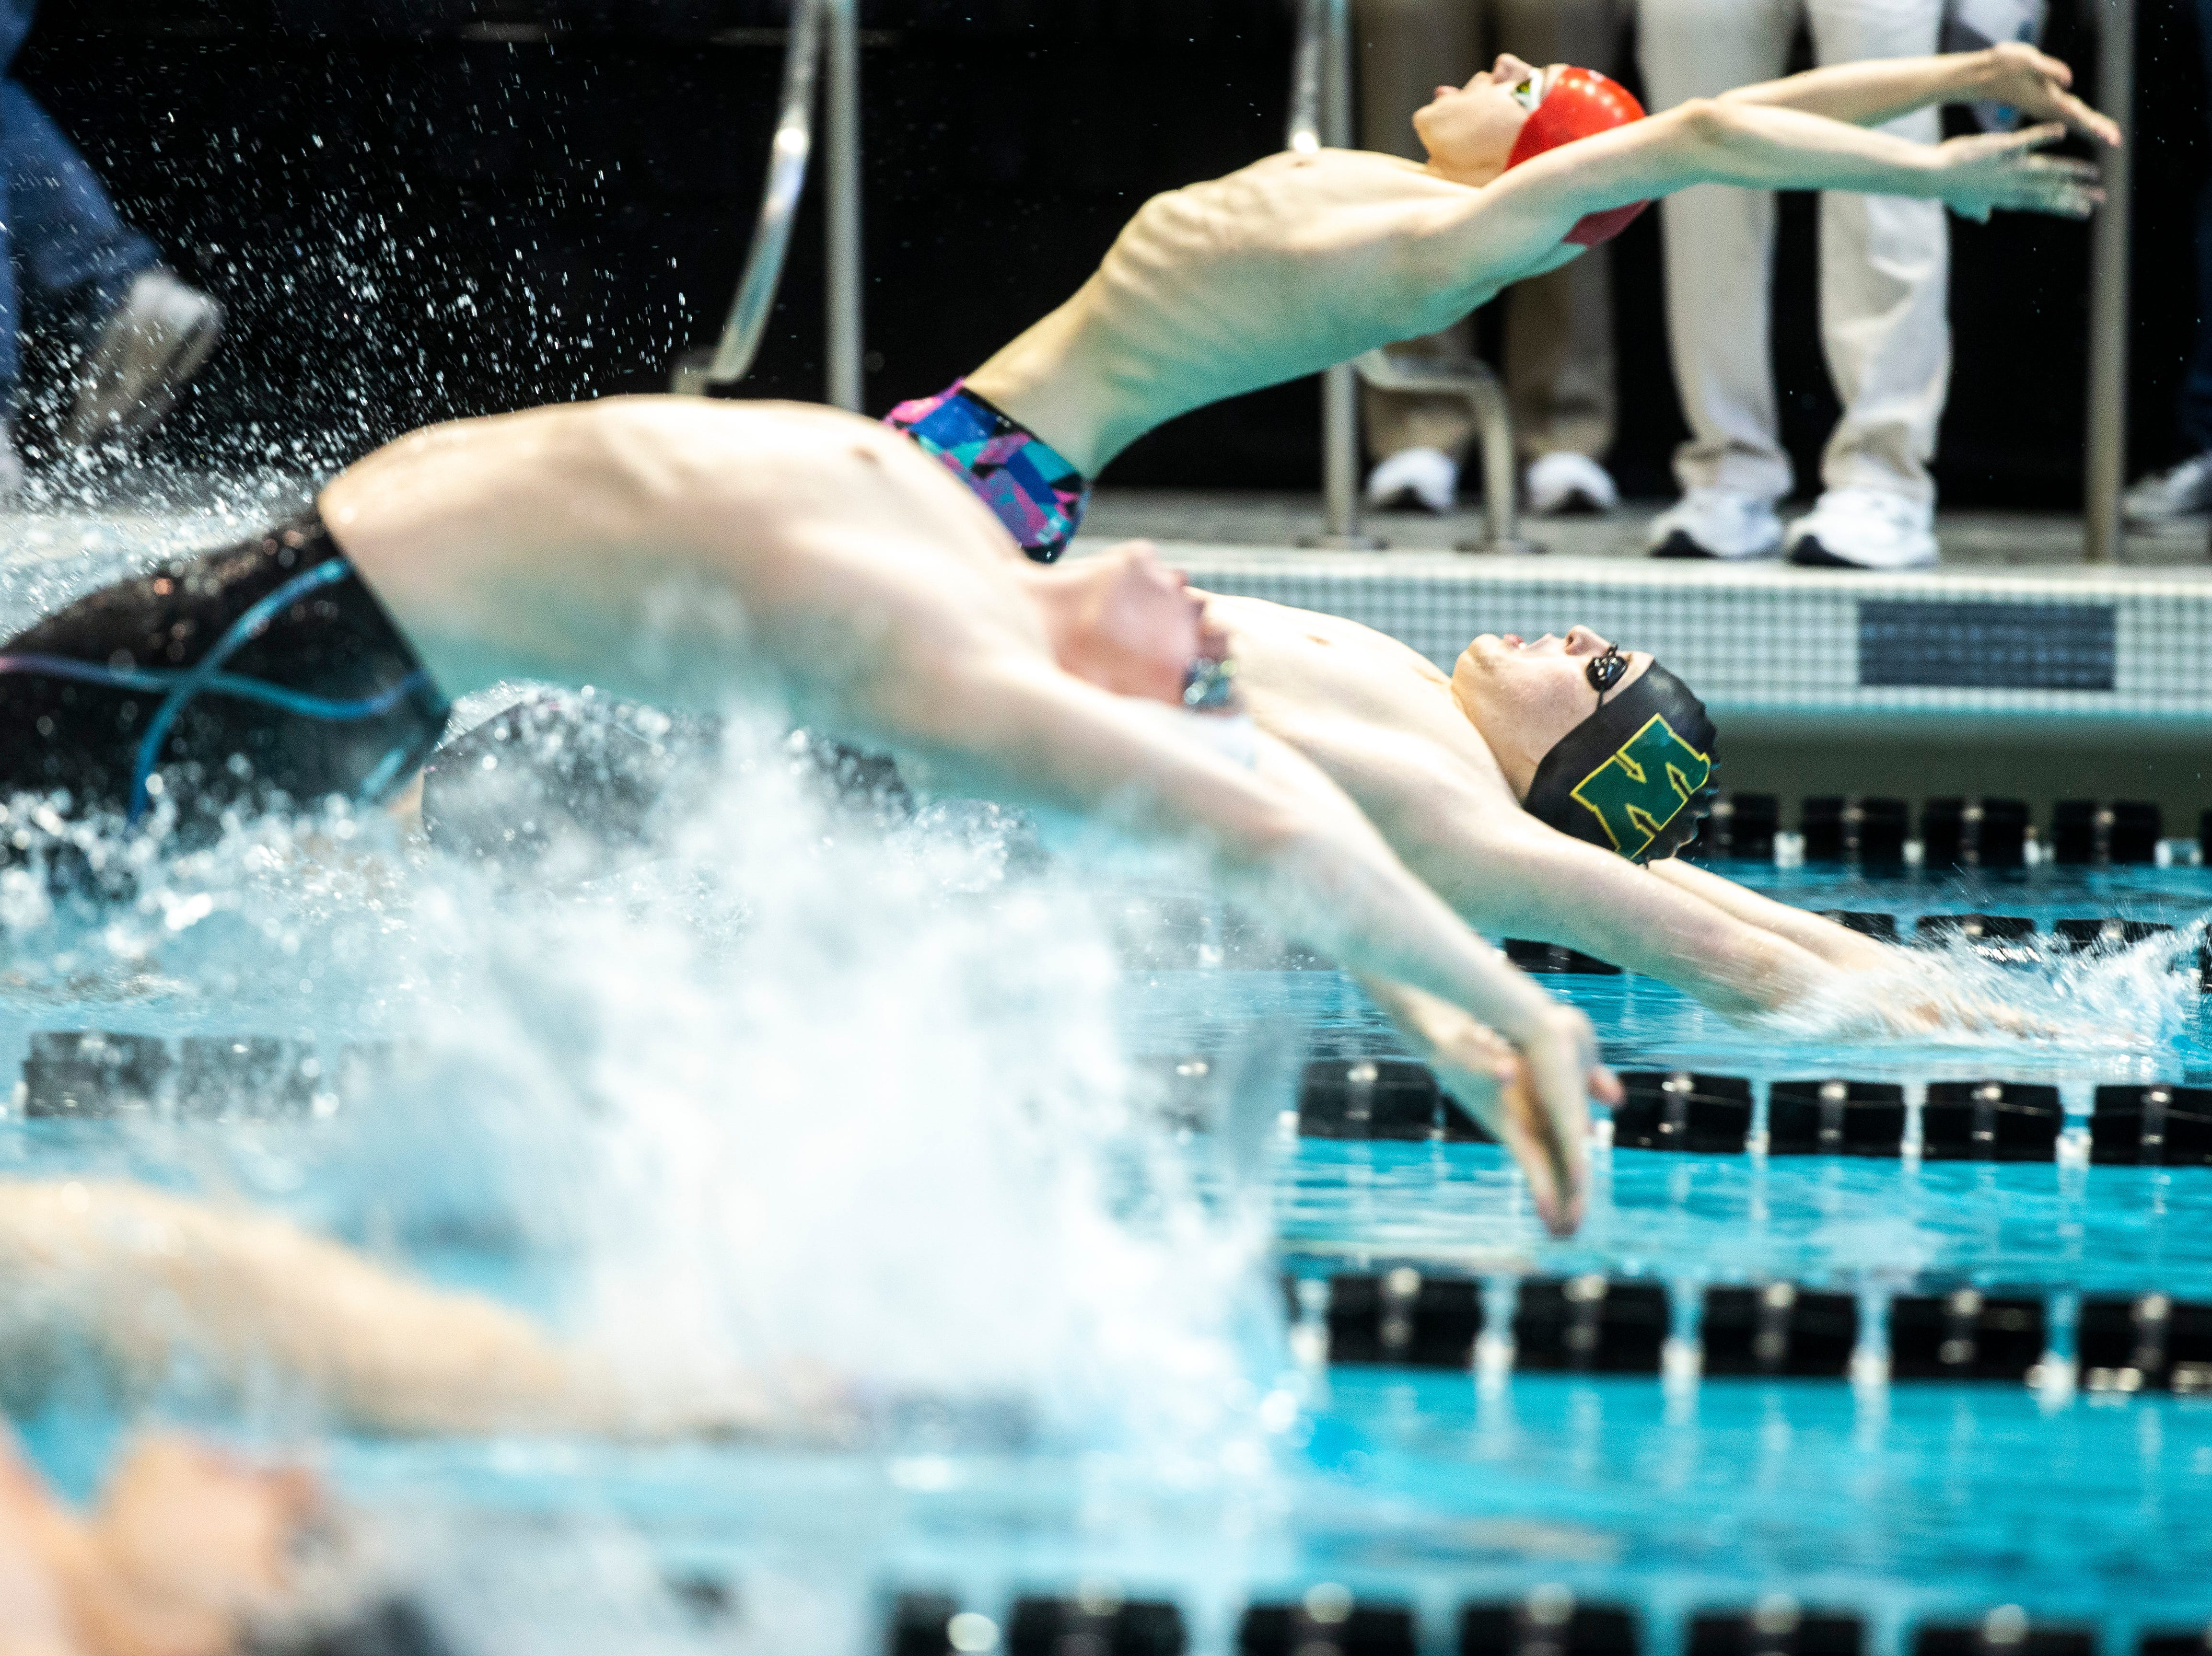 Iowa City West junior James Pinter leaps off the blocks at the start of the 200 yard medley relay during the Iowa boys' state swimming regional championship meet on Saturday, Feb. 9, 2019 at Campus Recreation and Wellness Center on the University of Iowa campus in Iowa City, Iowa. West High finished second, with a time of 1:34.75.